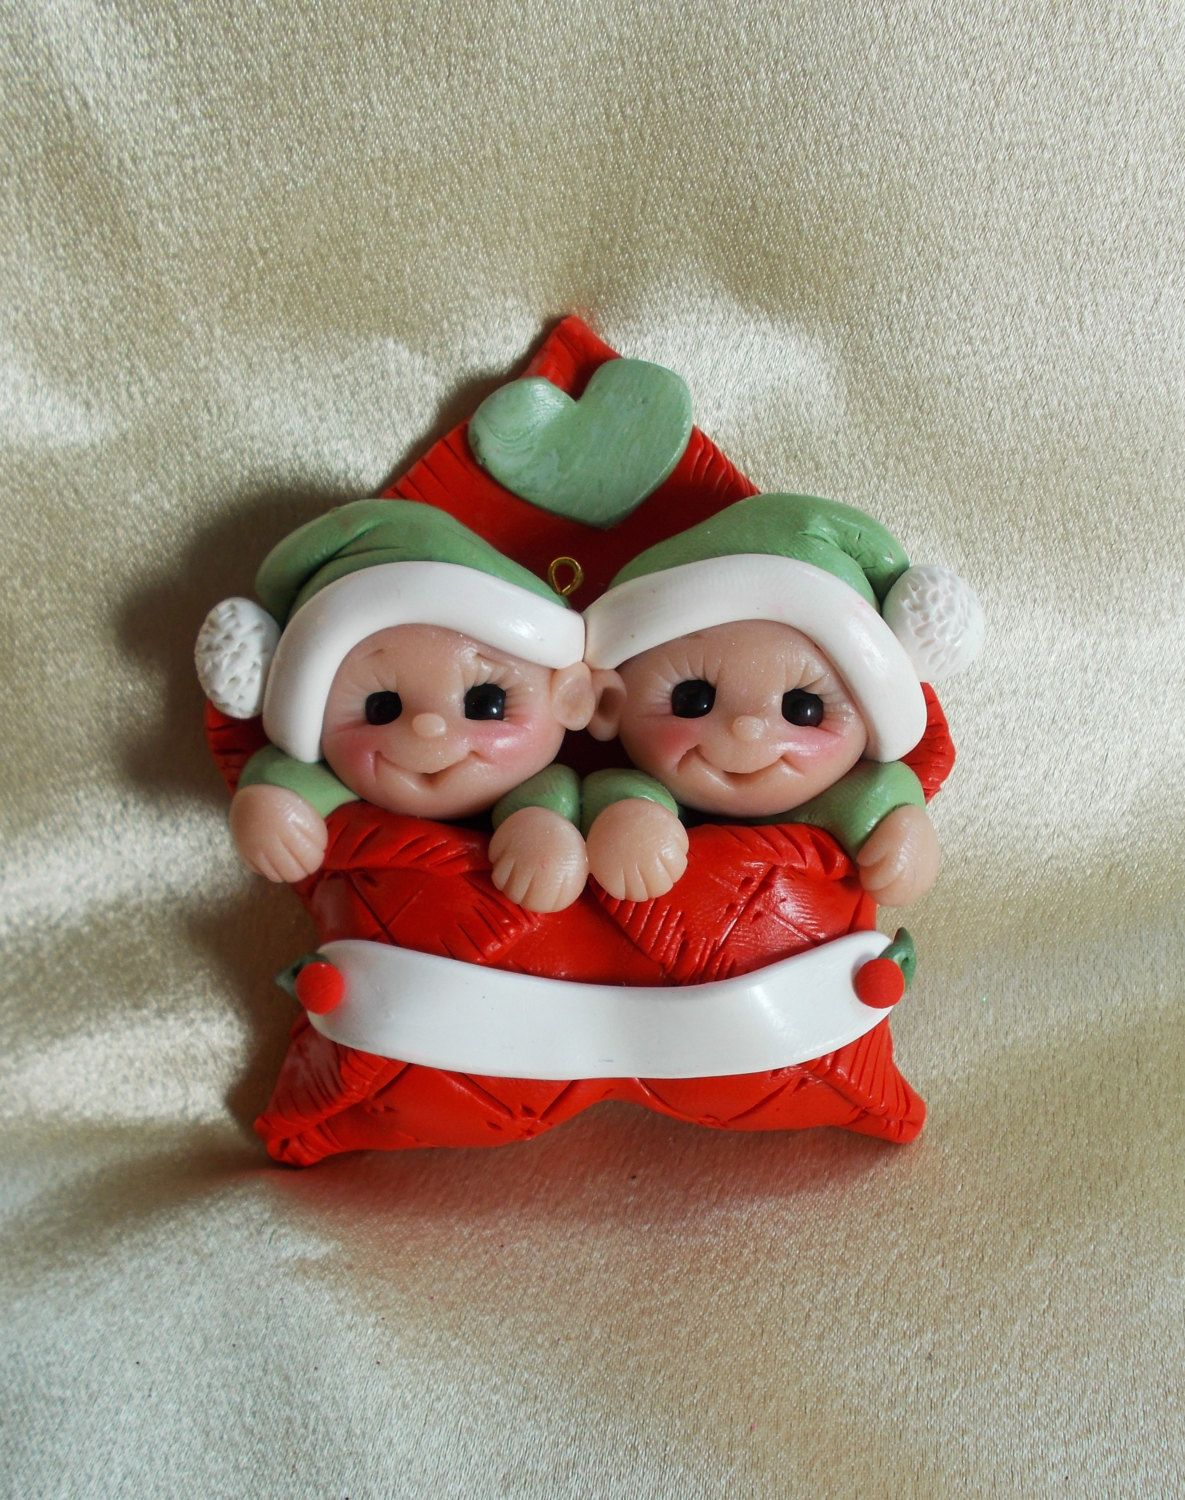 Twin Baby Ornament Twin Ornament Baby S First Christmas Etsy Baby Ornaments Baby Christmas Ornaments Handcrafted Ornaments